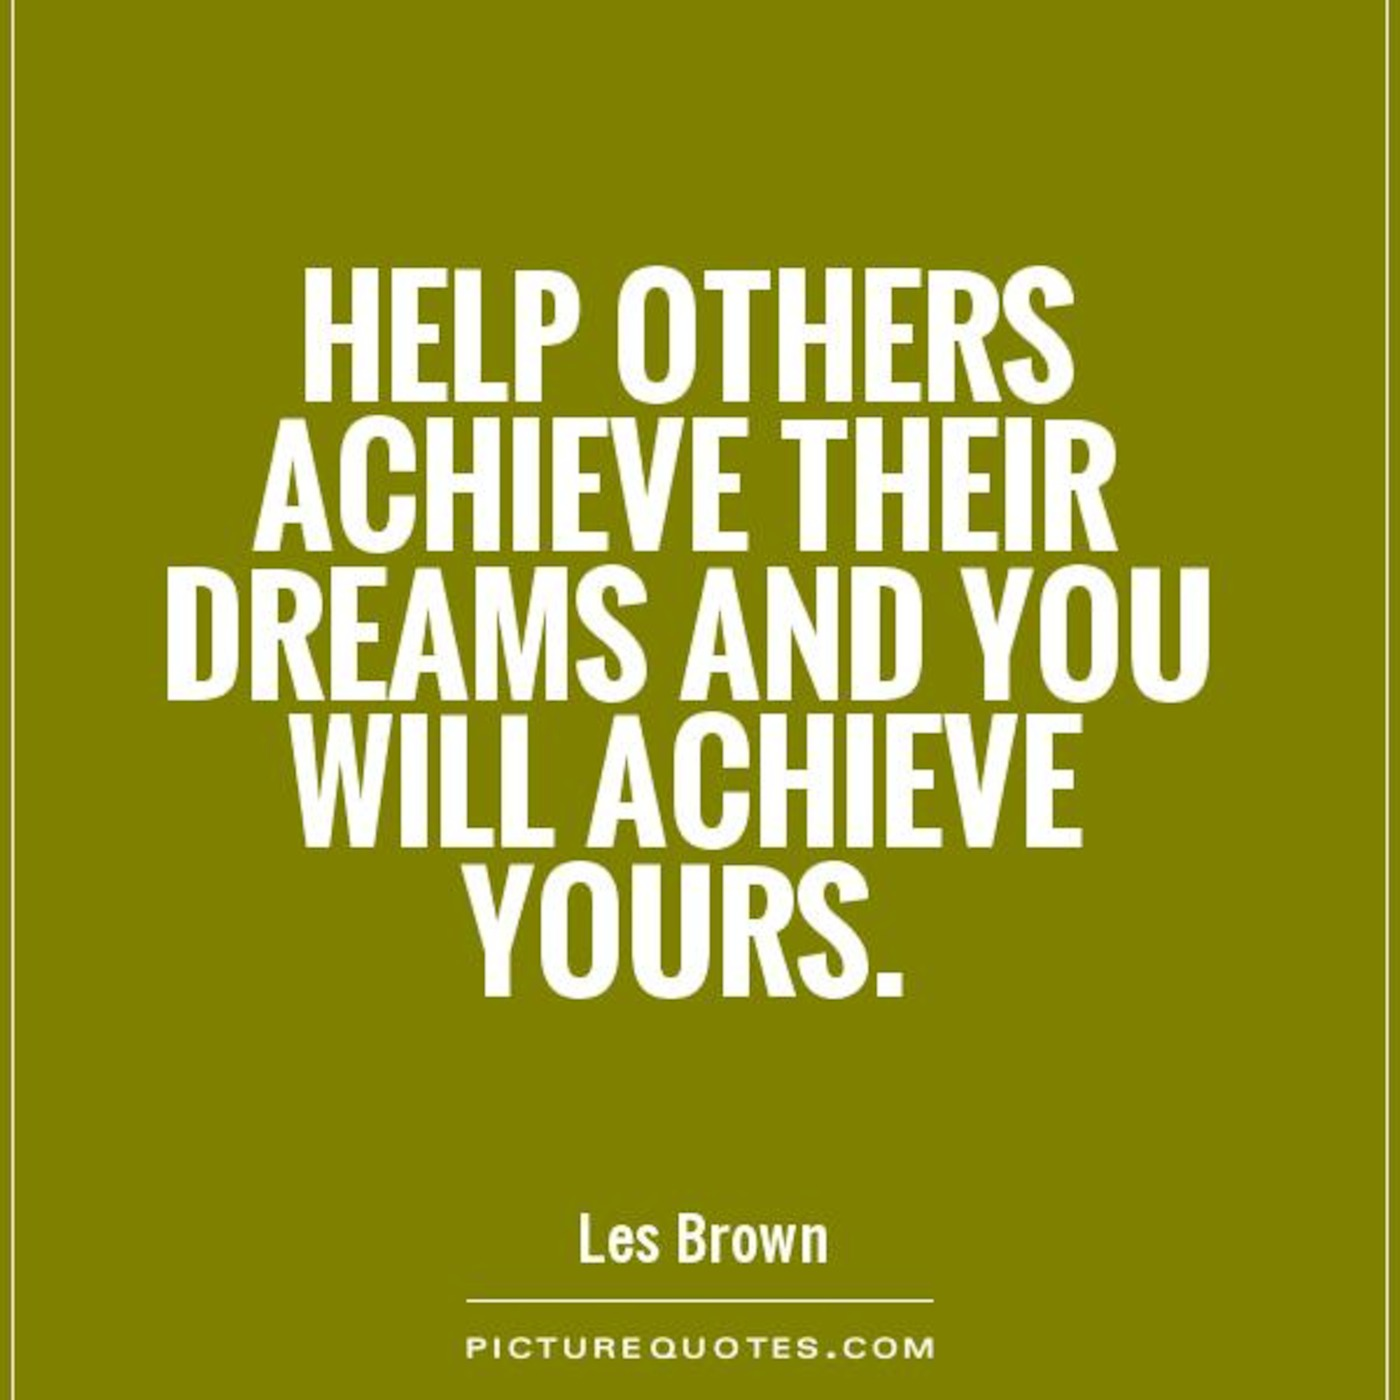 Quotes About Helping Others: Quotes About Community Helpers (45 Quotes